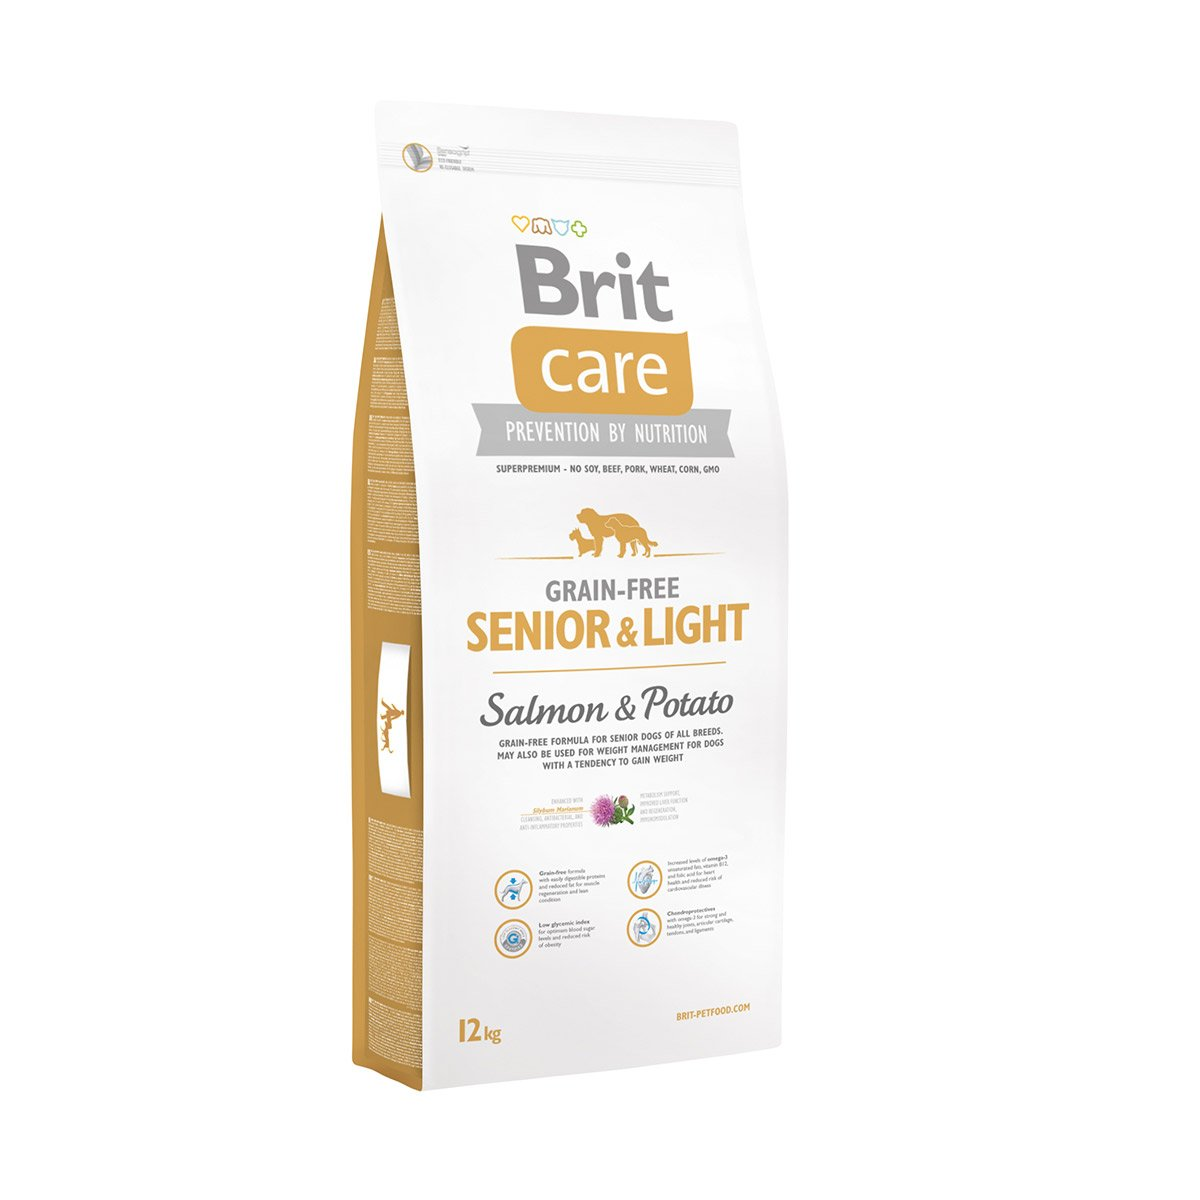 Brit Care Dog Grain-free Senior & Light Salmon & Potato 12kg von Brit